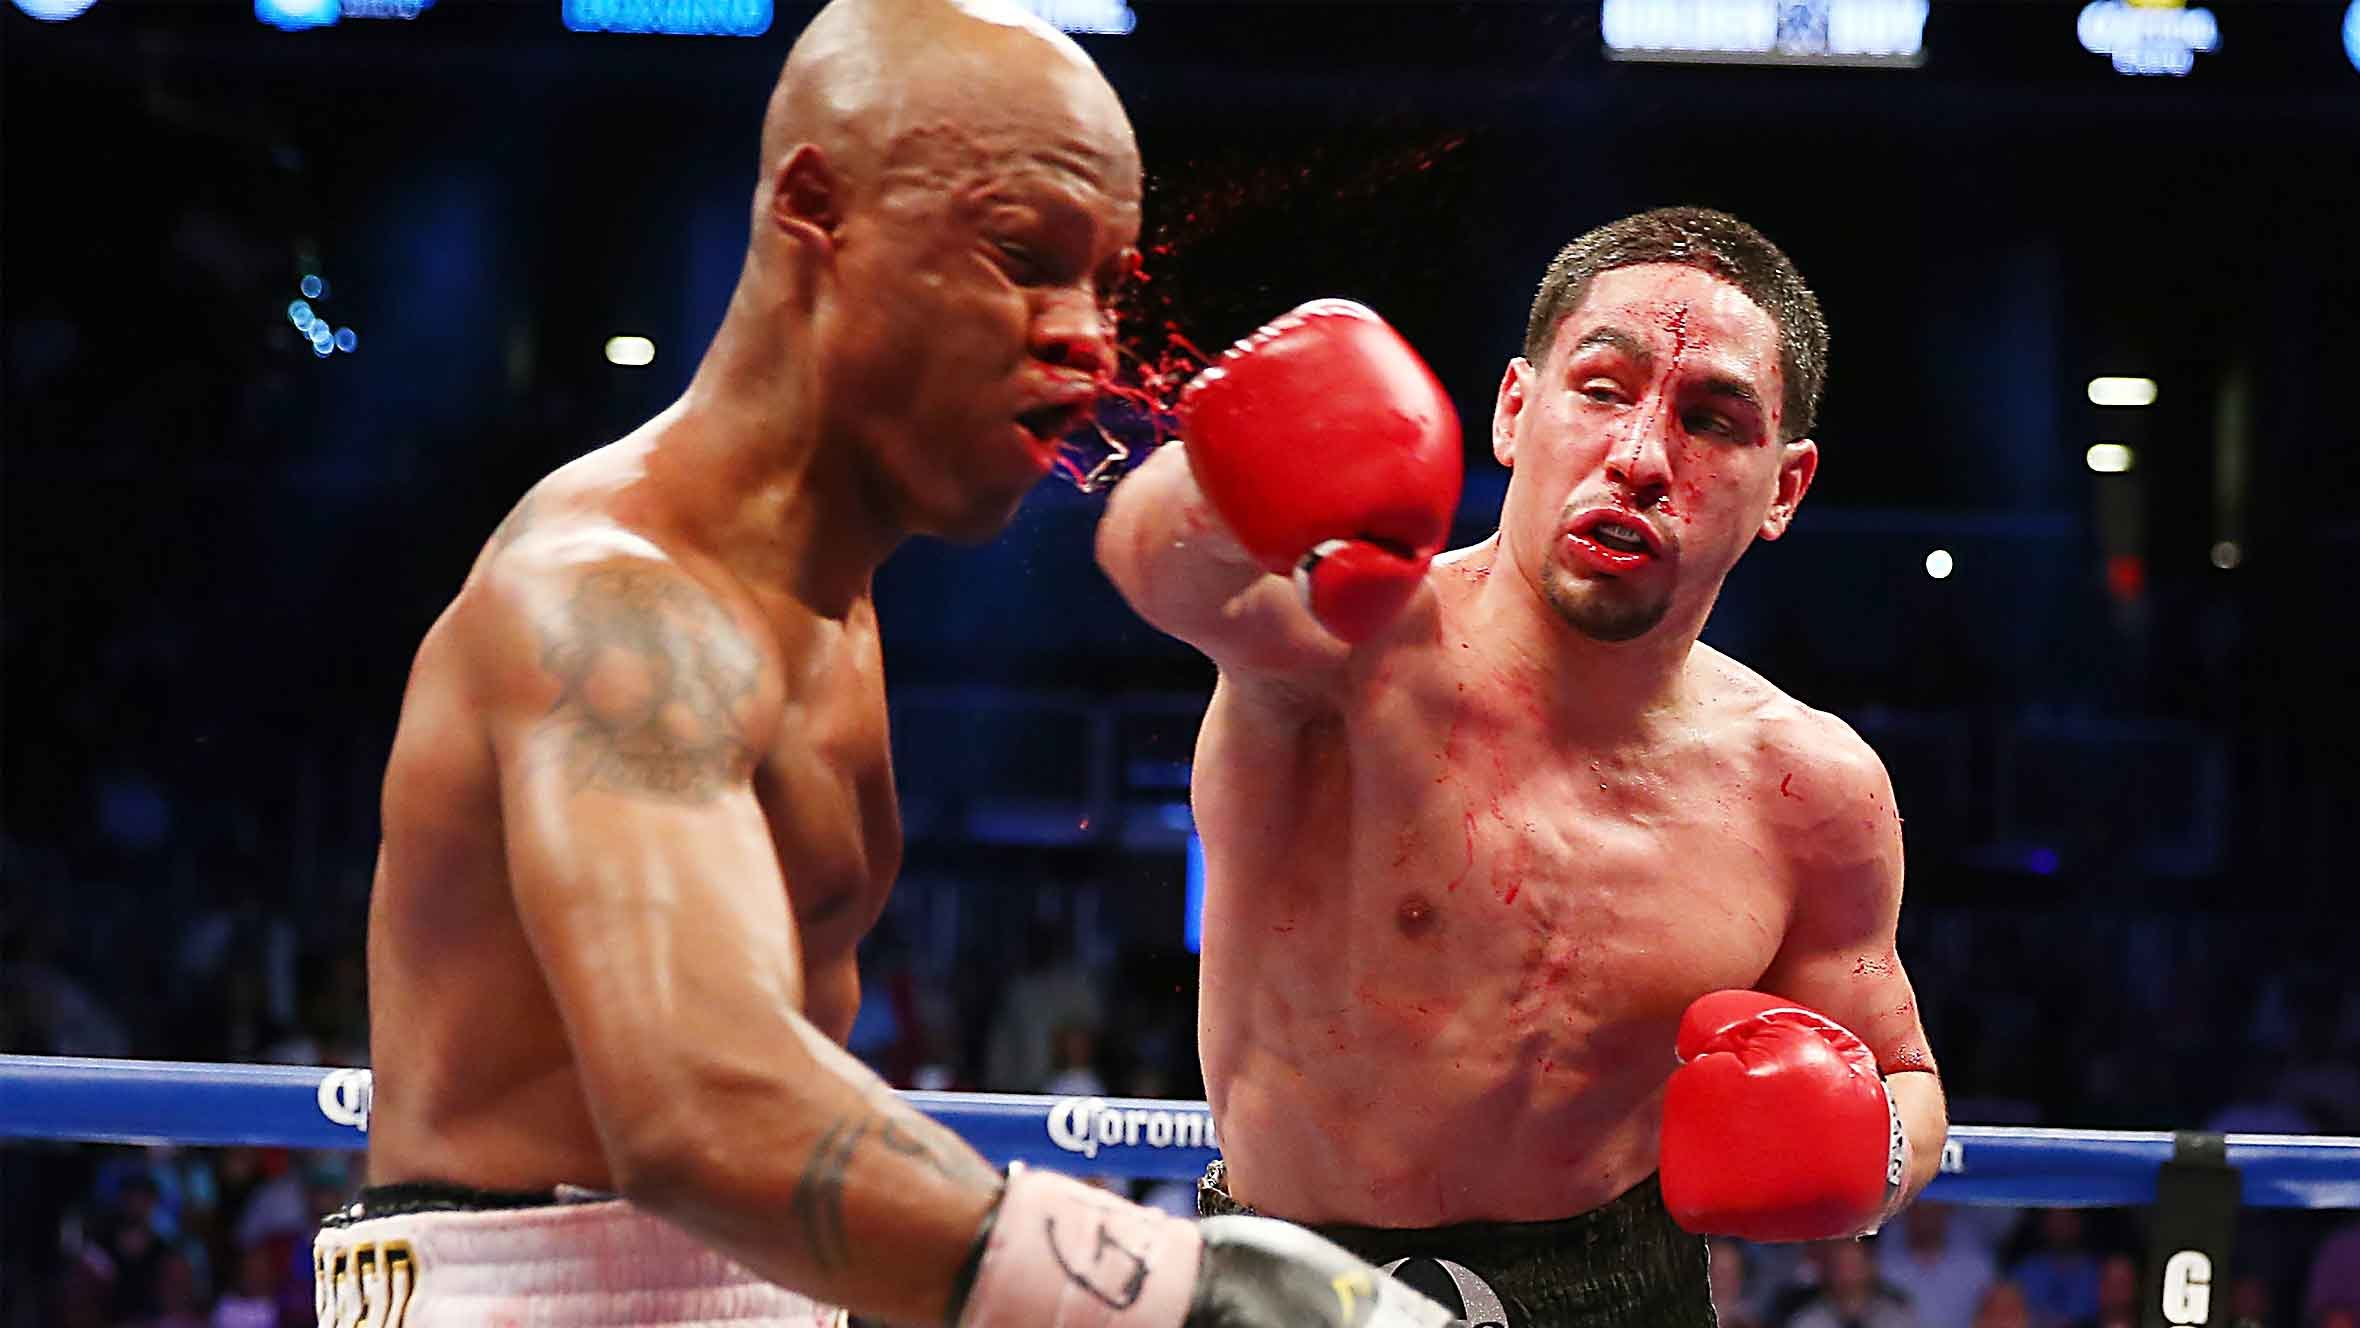 Danny Garcia - Danny Garcia Facing Either Manny Pacquiao or Errol Spence Jr This Fall